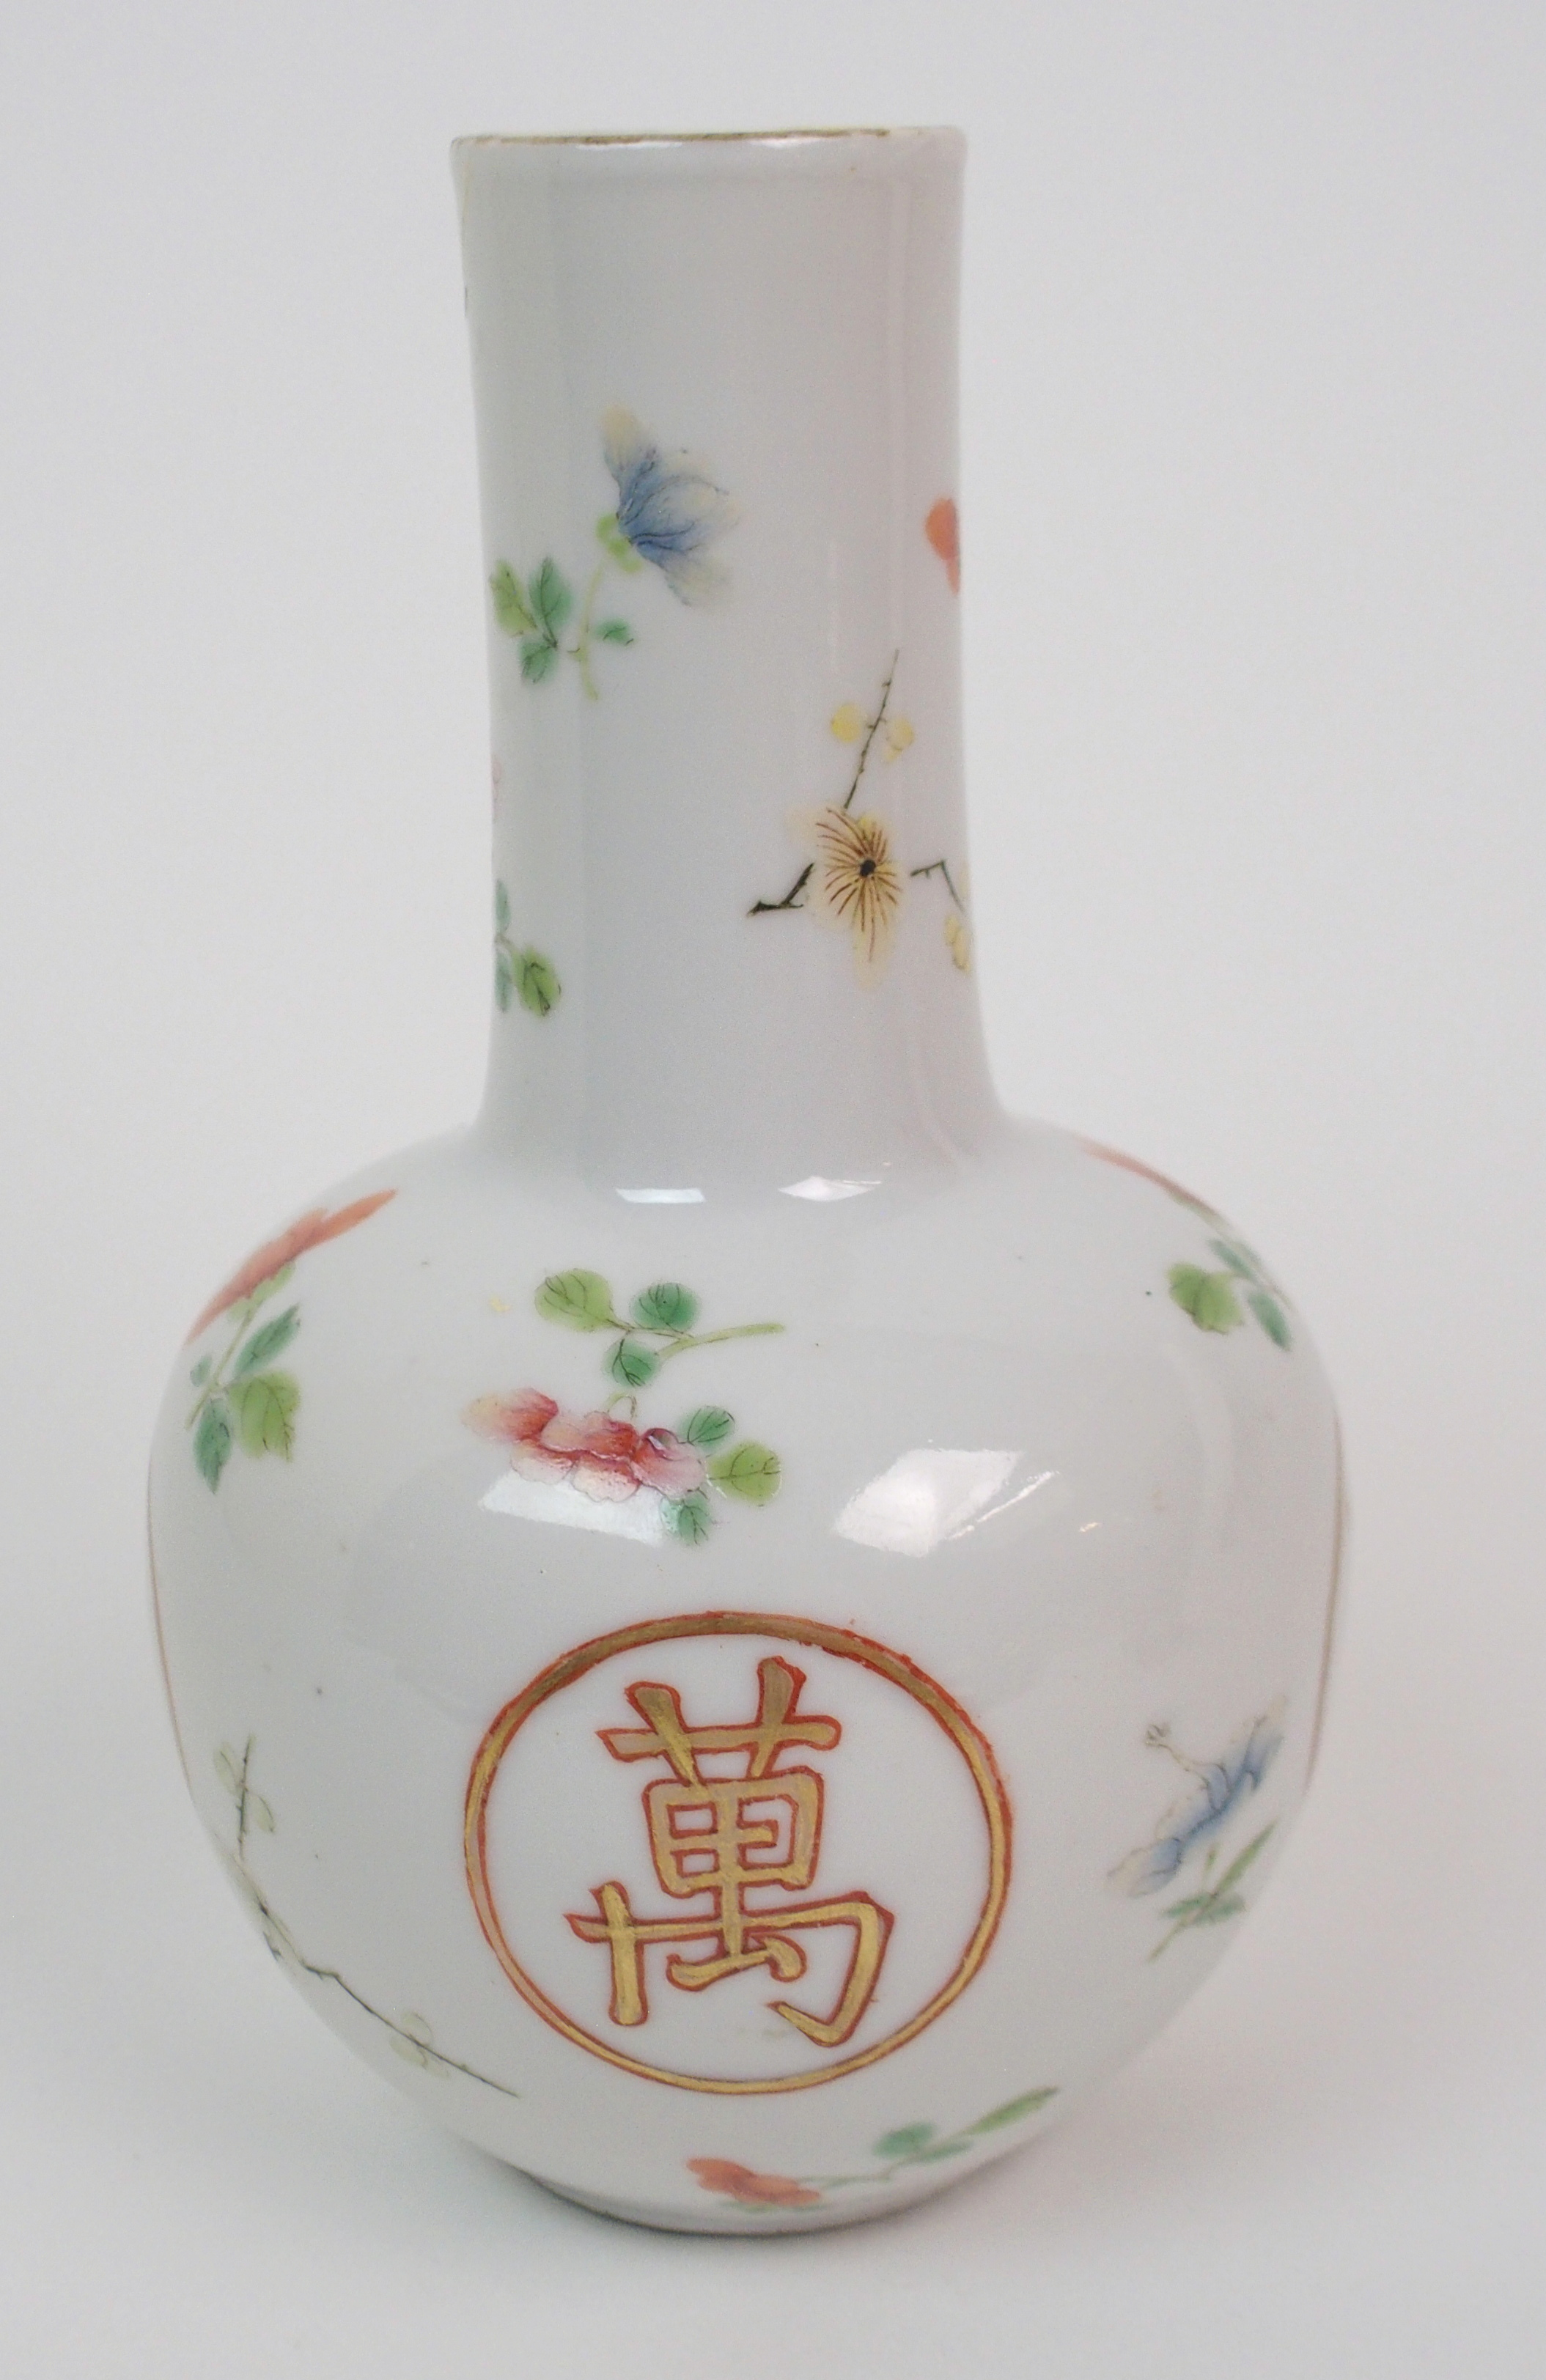 Lot 30 - A CHINESE BALUSTER VASE painted with gilt shou character roundels amongst scattered flowers, red